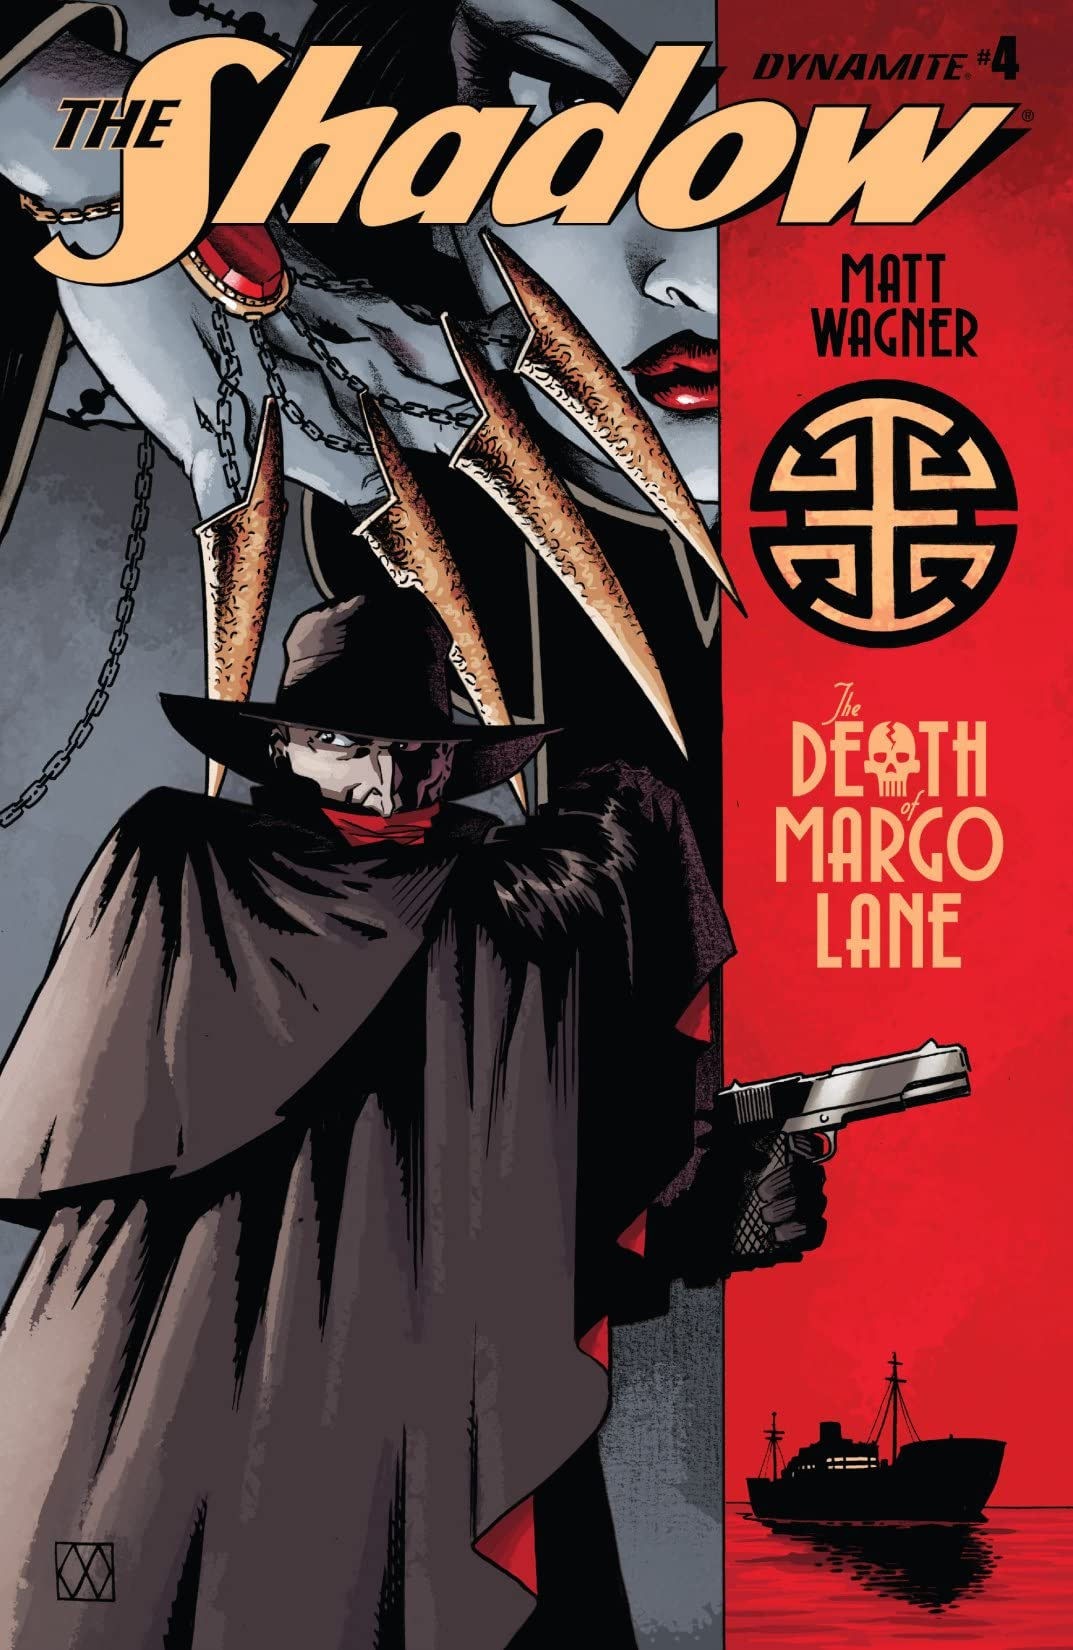 The Shadow: The Death of Margot Lane #4: Digital Exclusive Edition